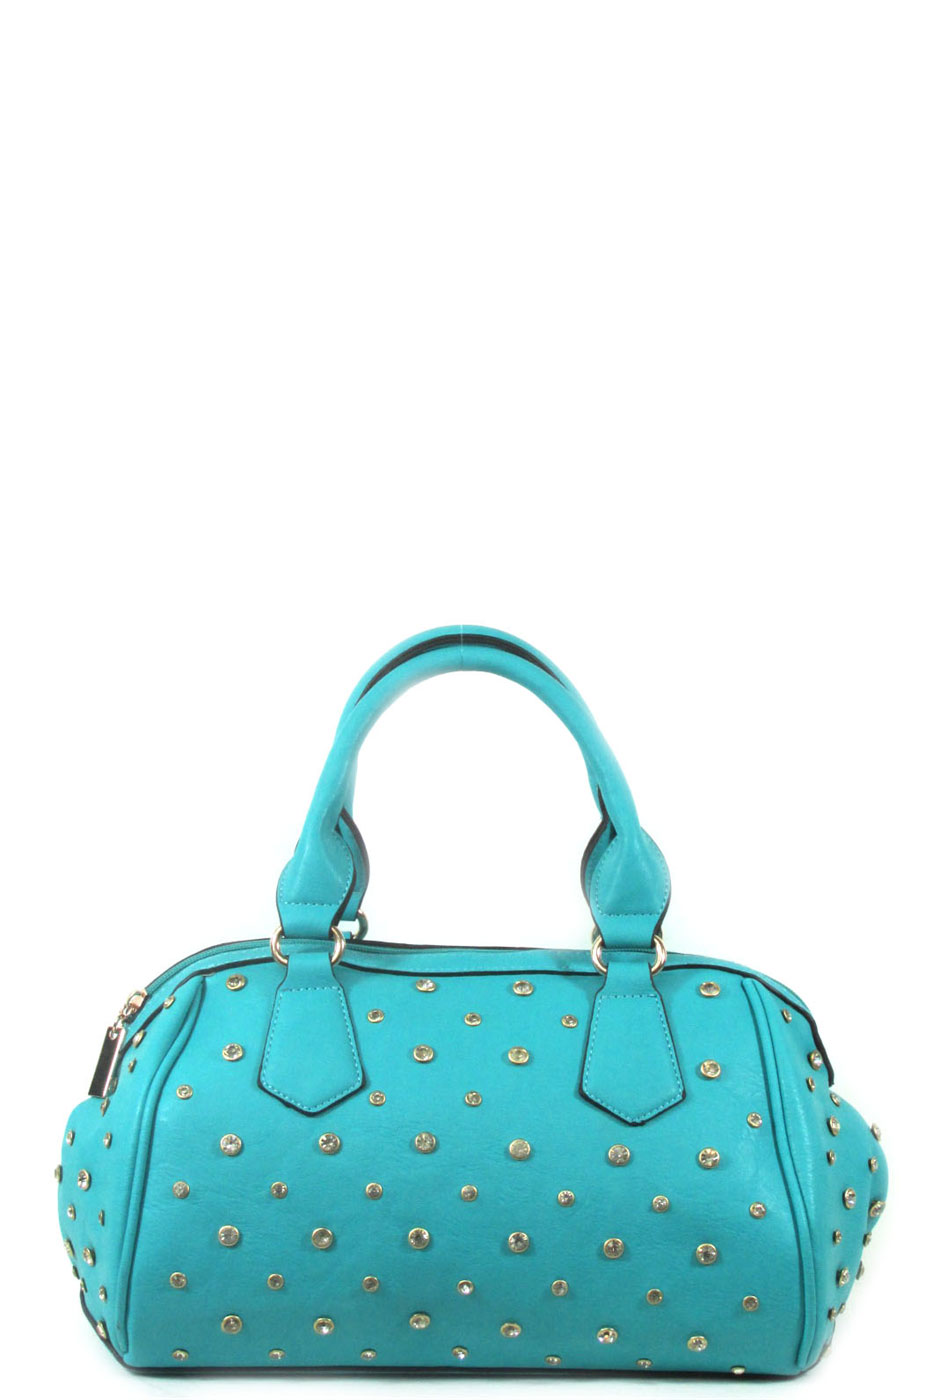 Fancy satchel rhinestone - orangeshine.com